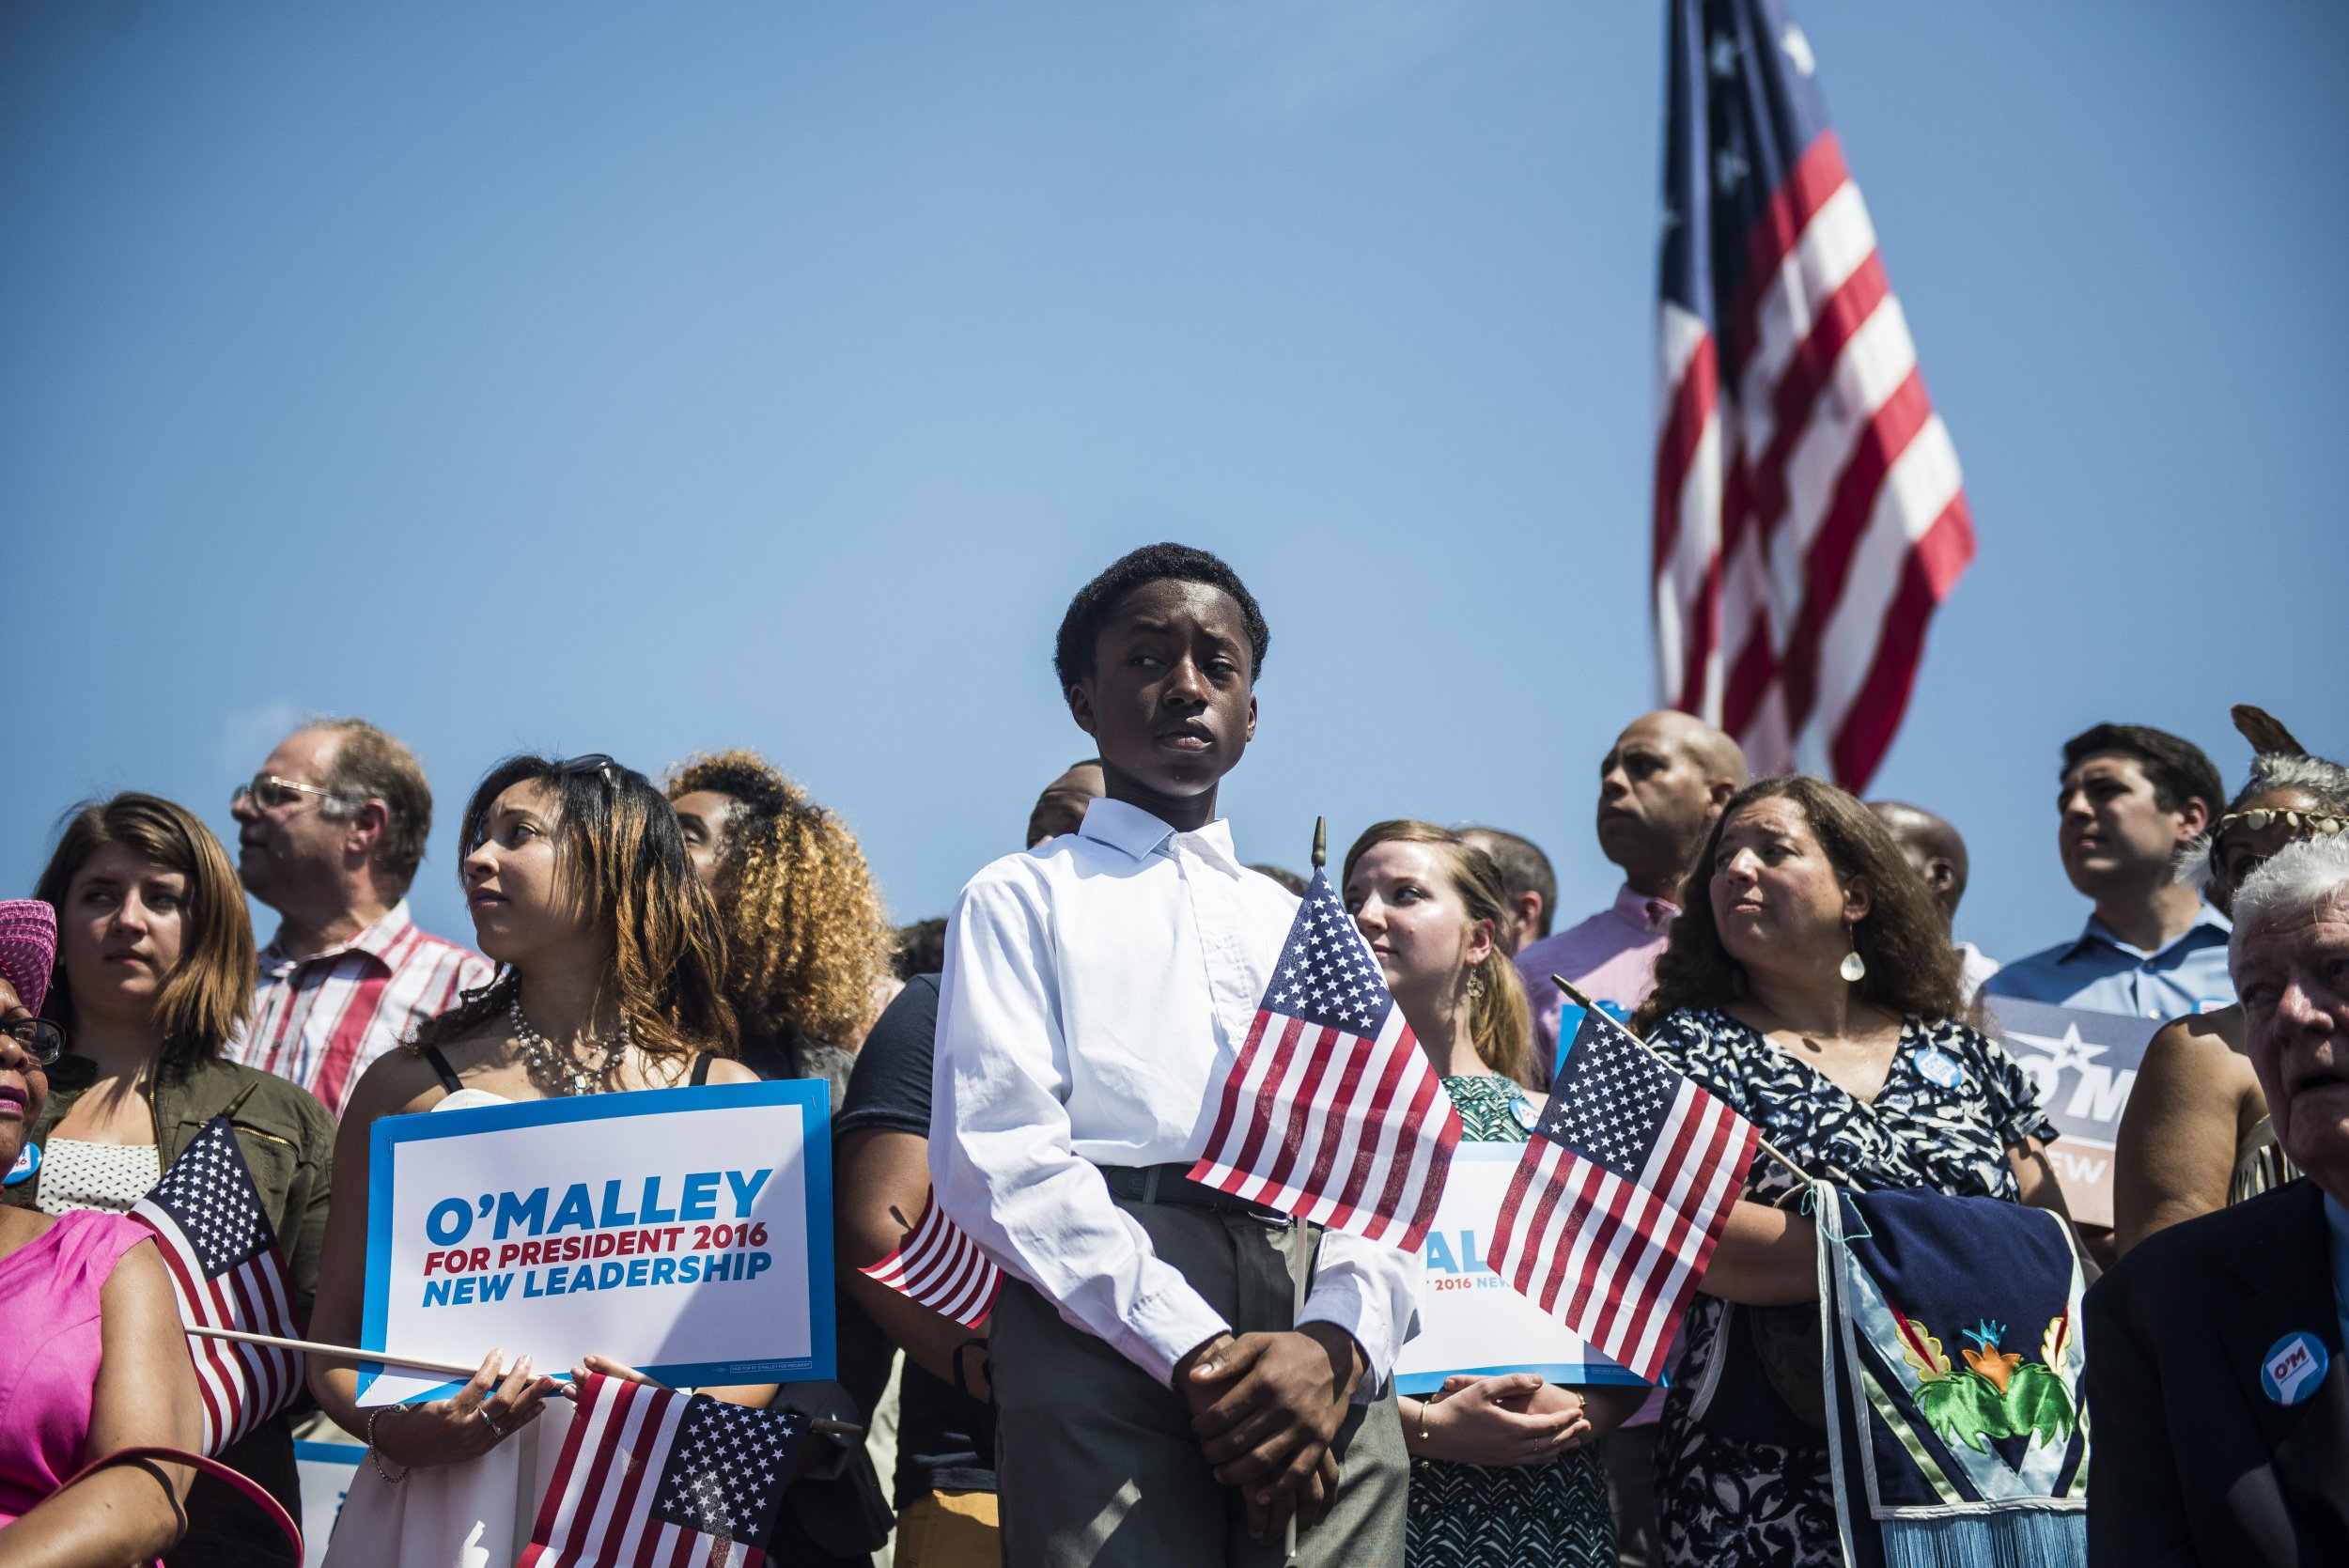 06_19_OMalley_01